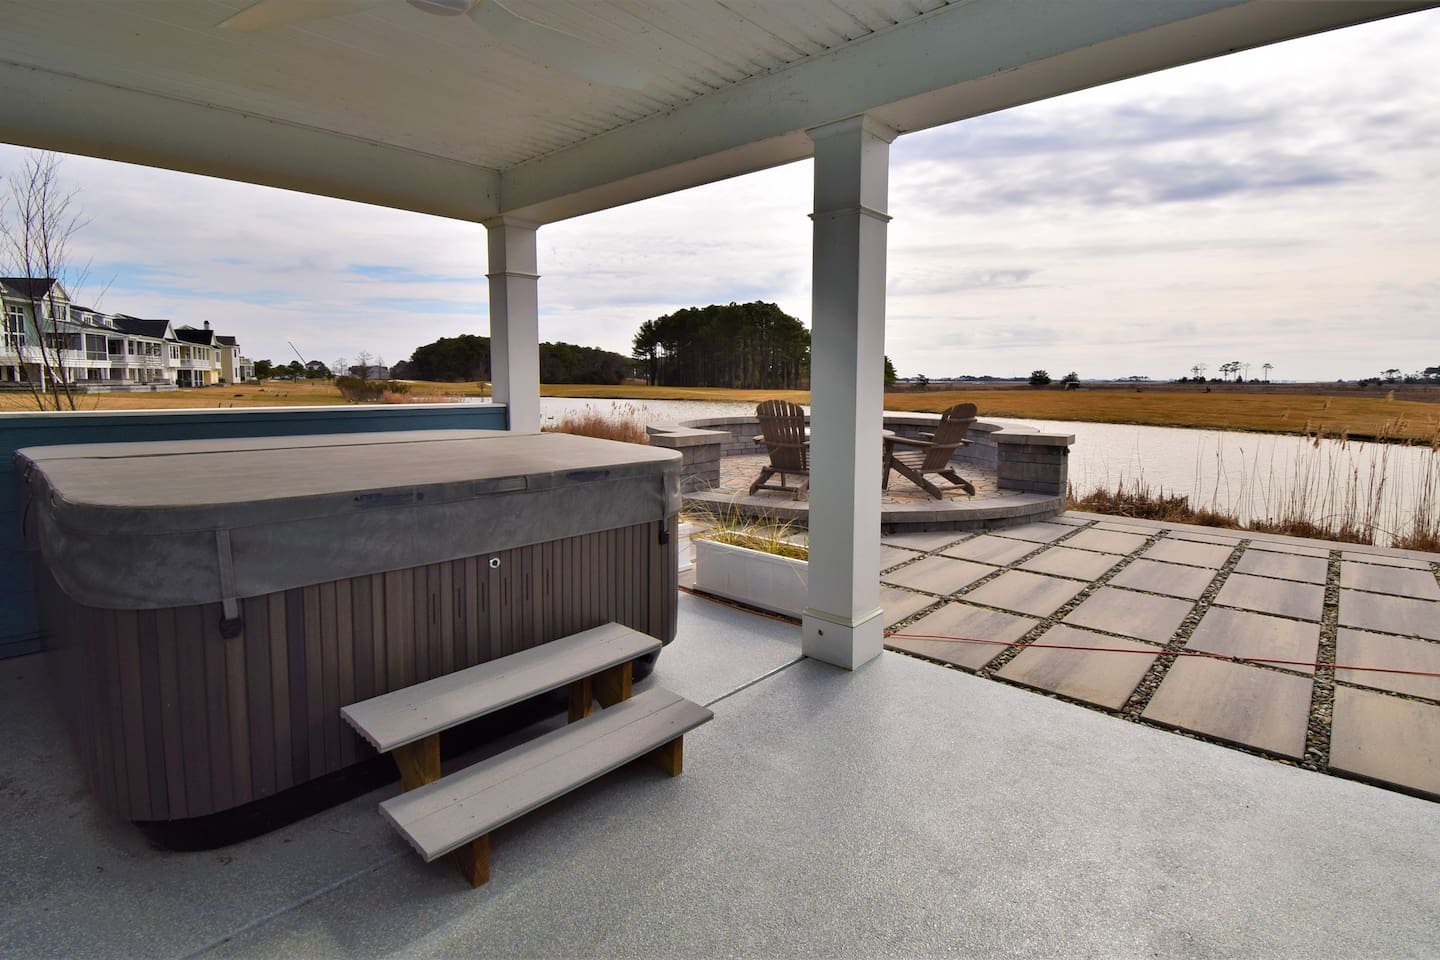 Beautiful views from the hot tub and fire pit overlooking water and Ocean City